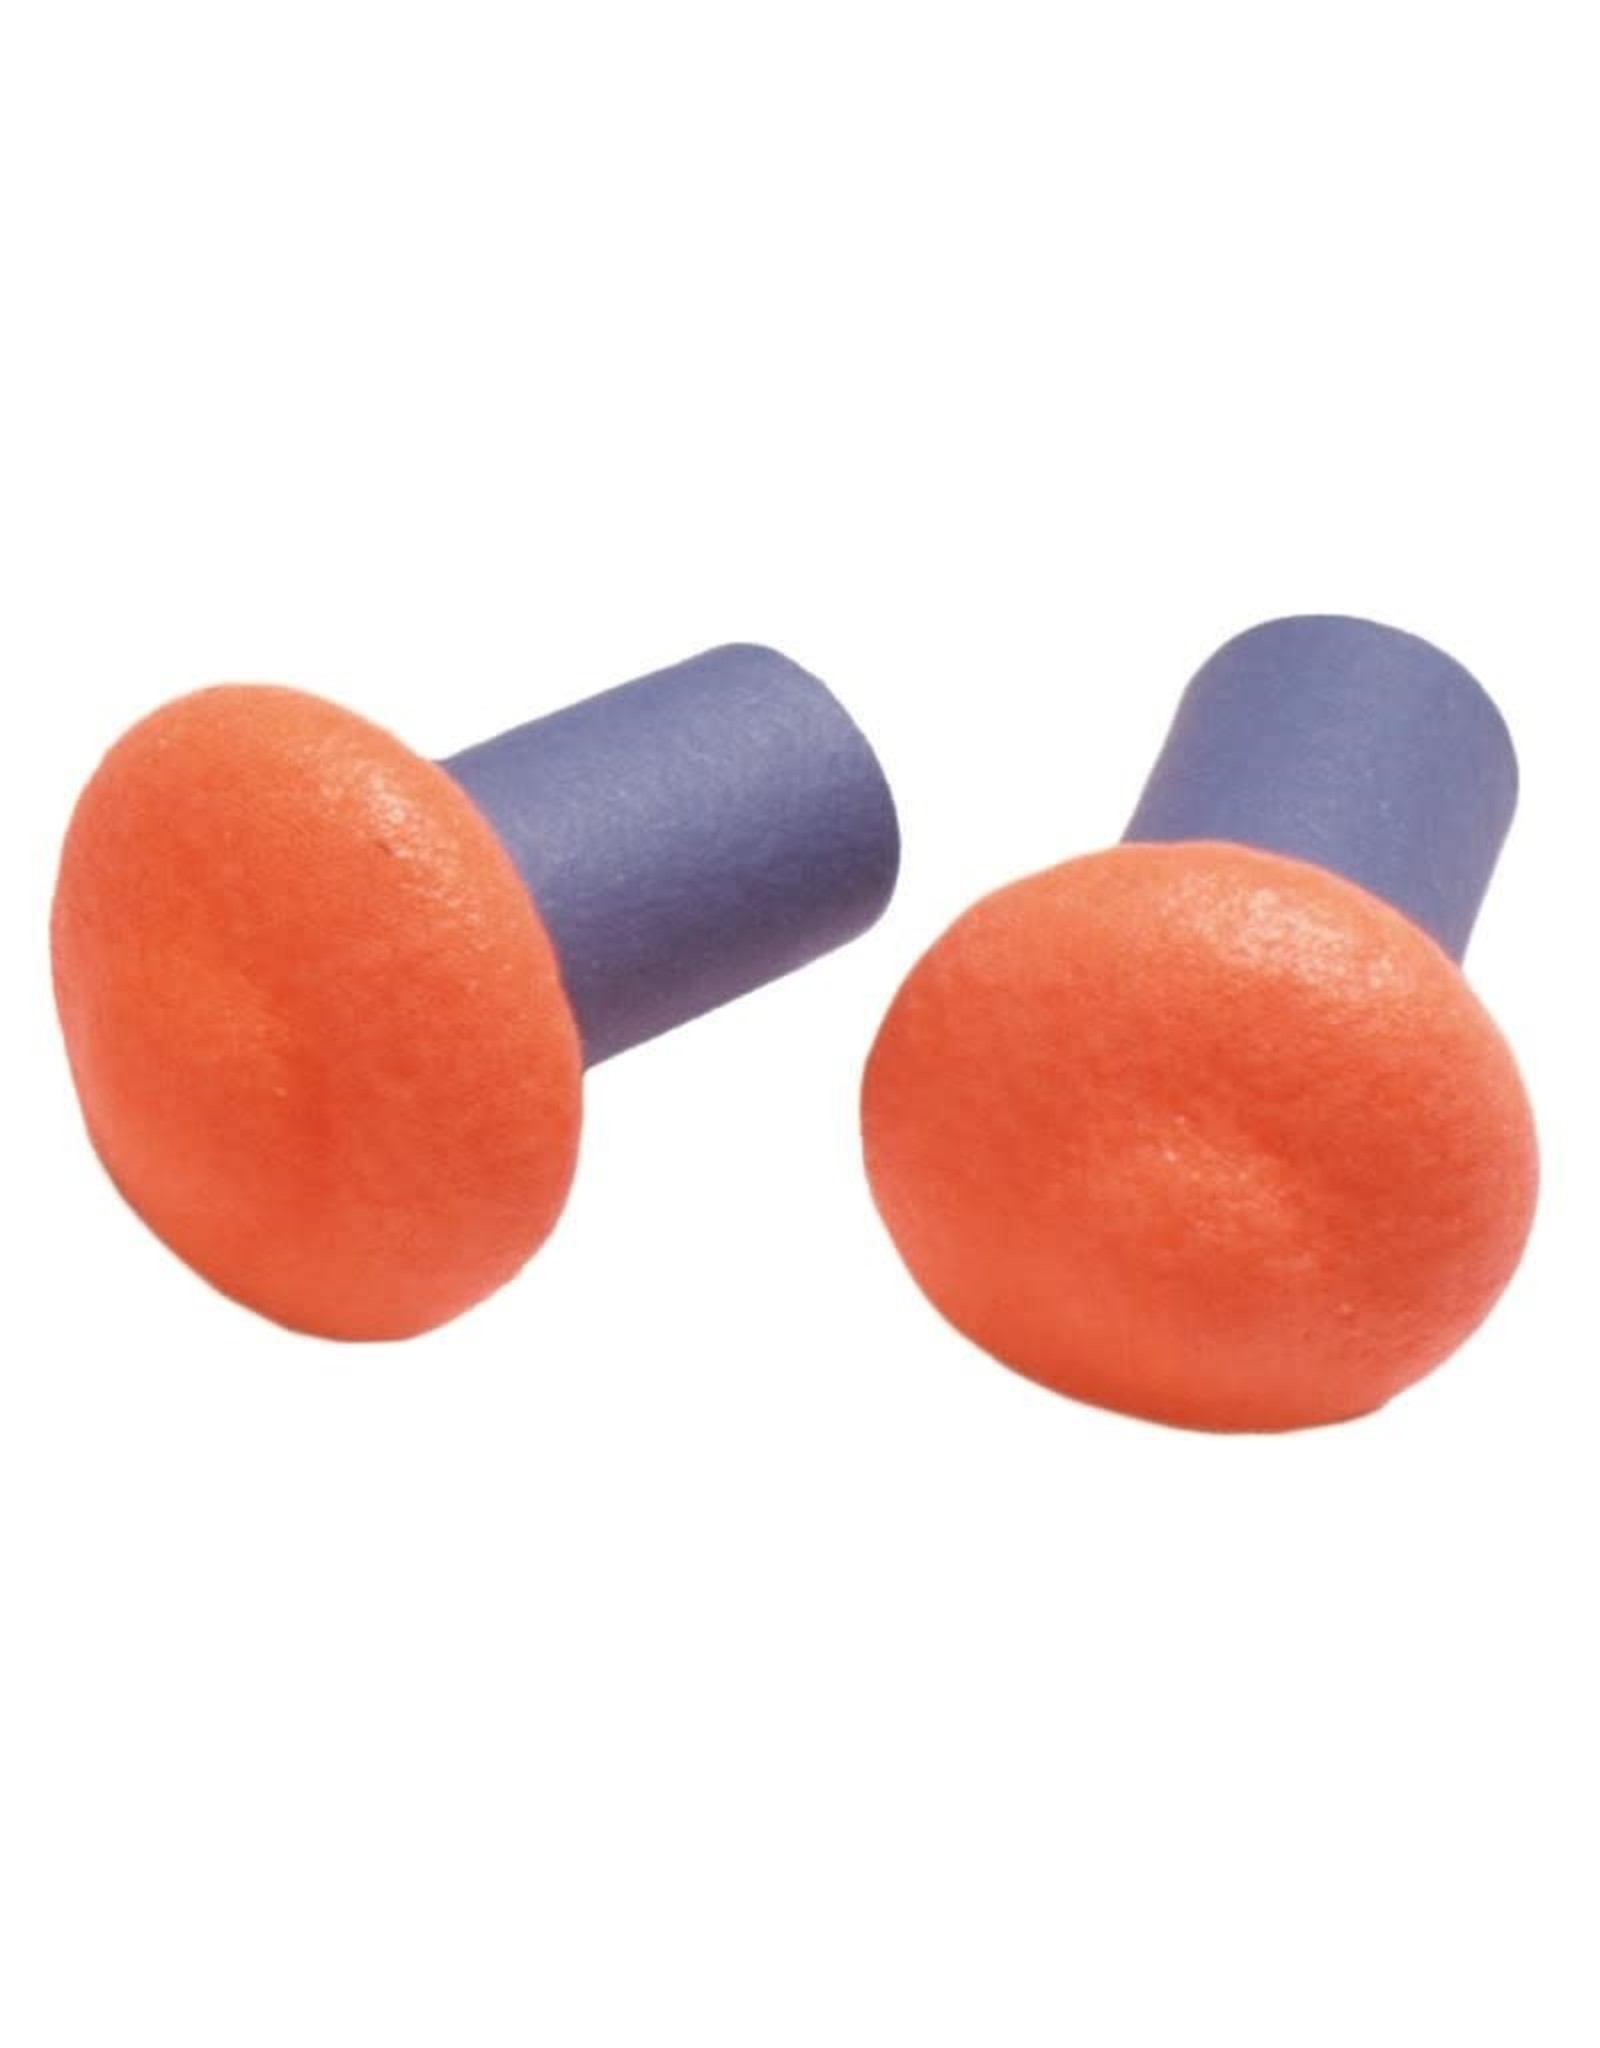 Quiet Band-Banded Multi-Use Earplugs